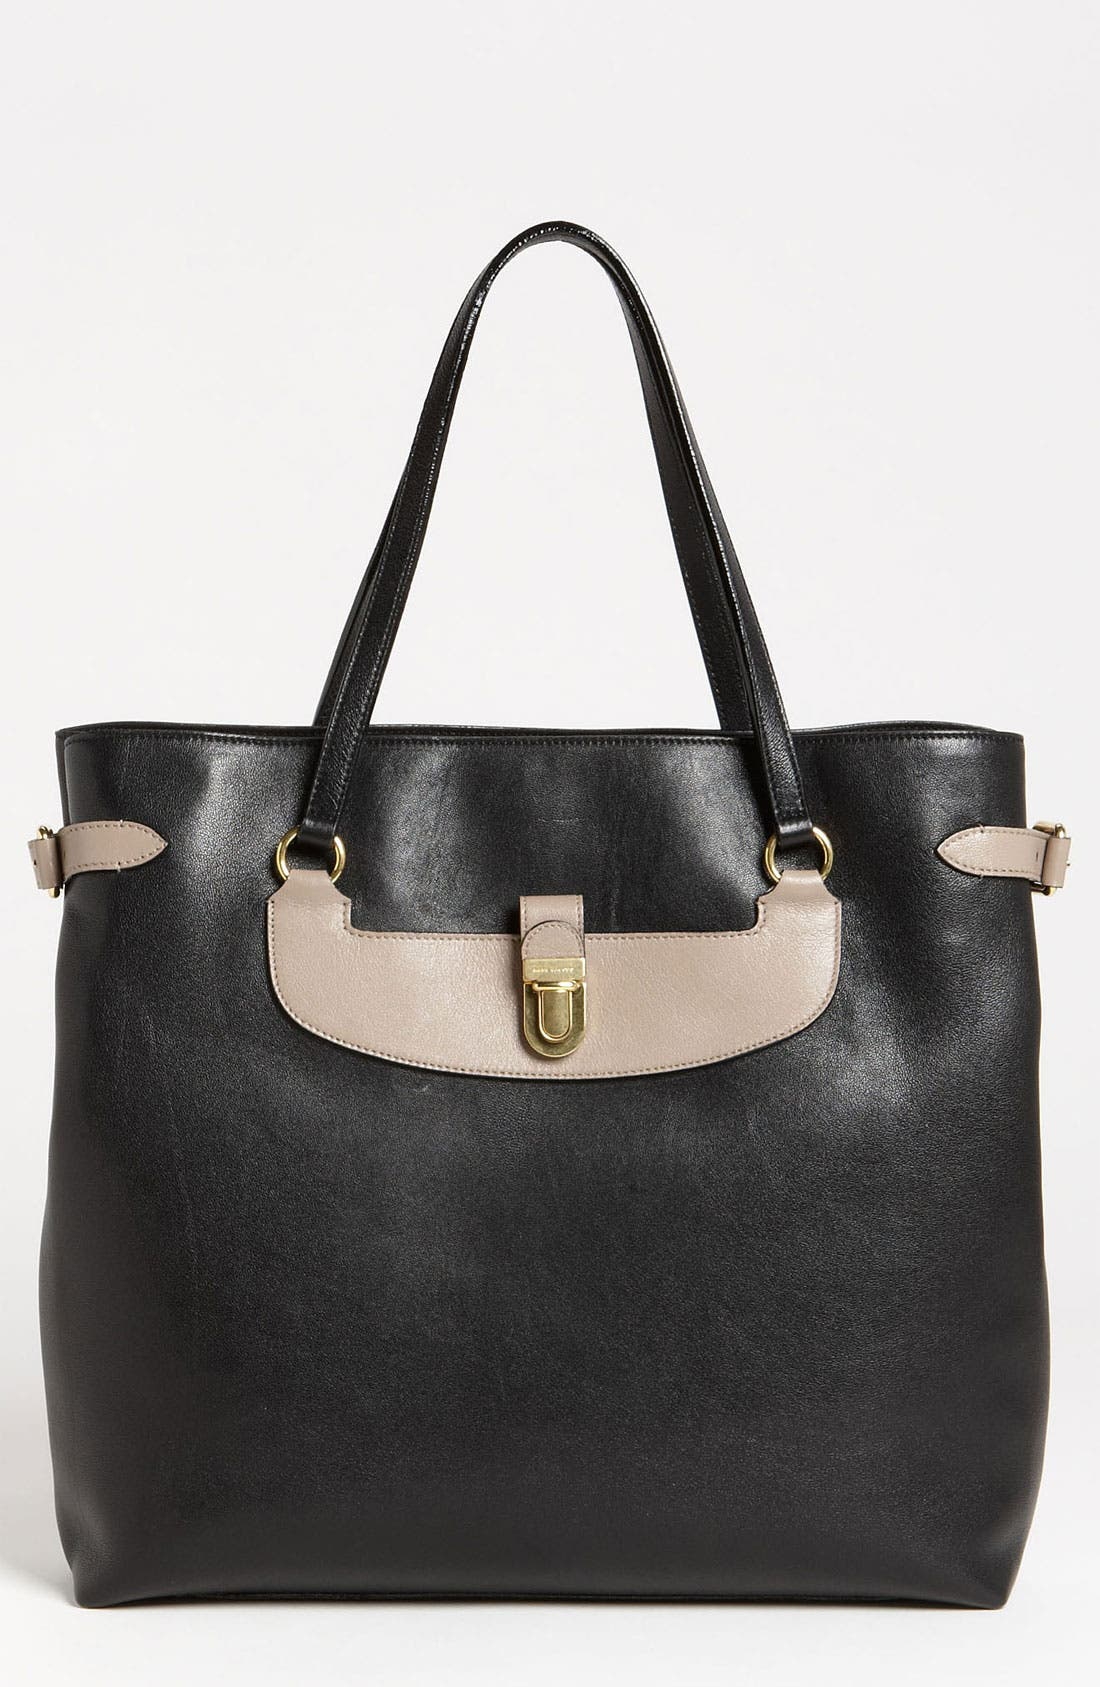 Main Image - MARC JACOBS 'Colorblocked Manhattan Mercer' Leather Tote